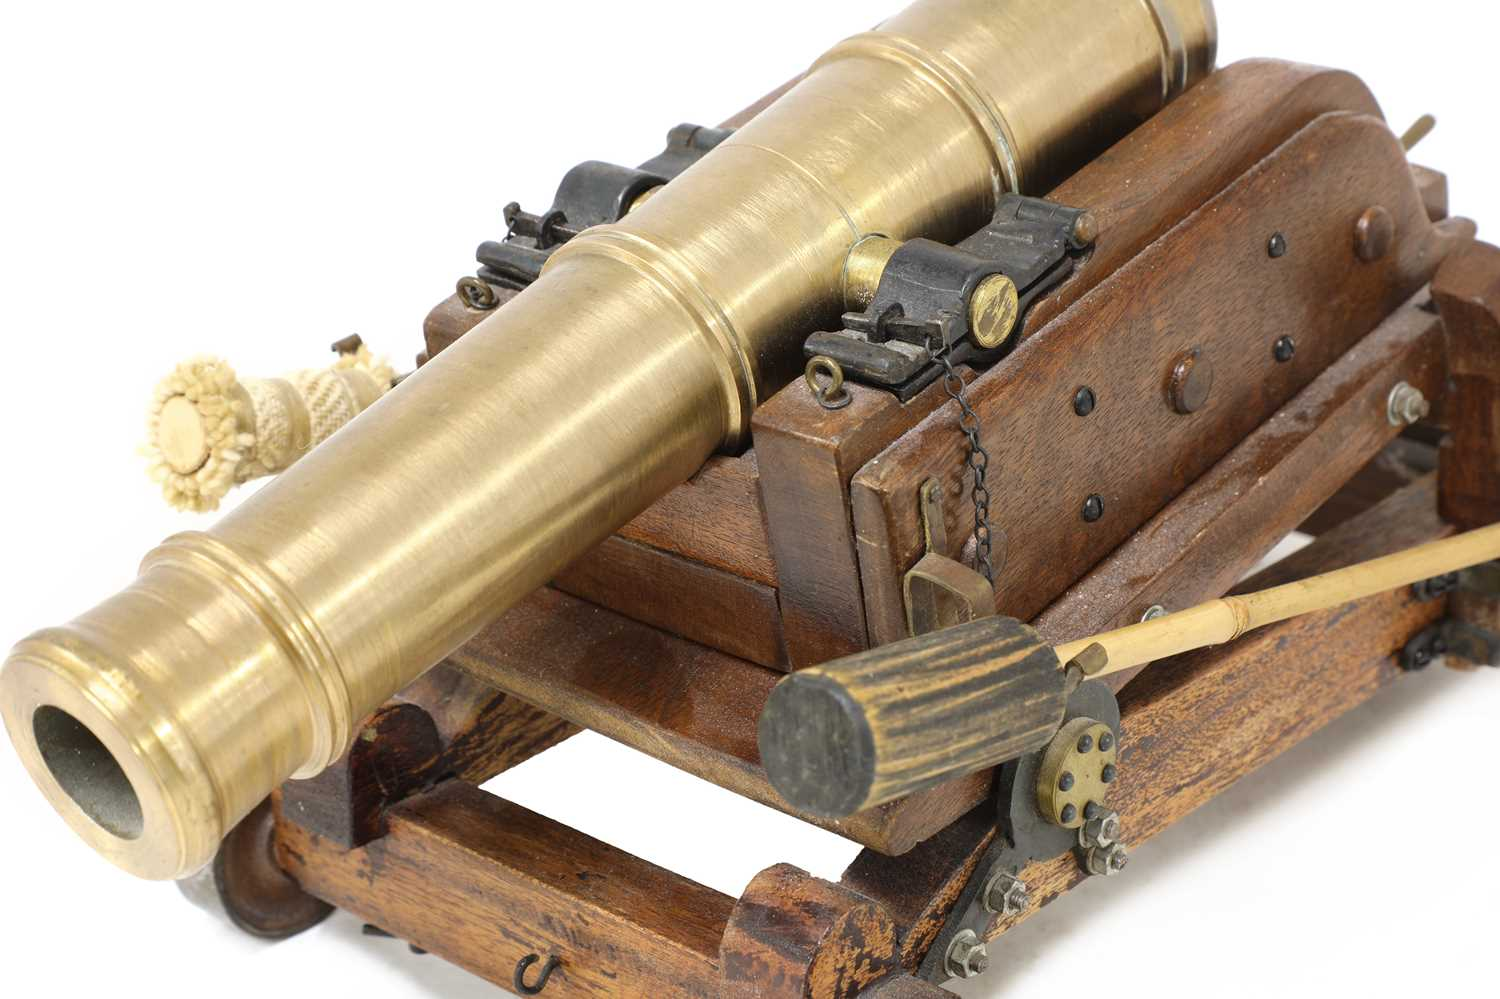 A model of a late 18th century 24lb Gibraltar cannon, - Image 3 of 6